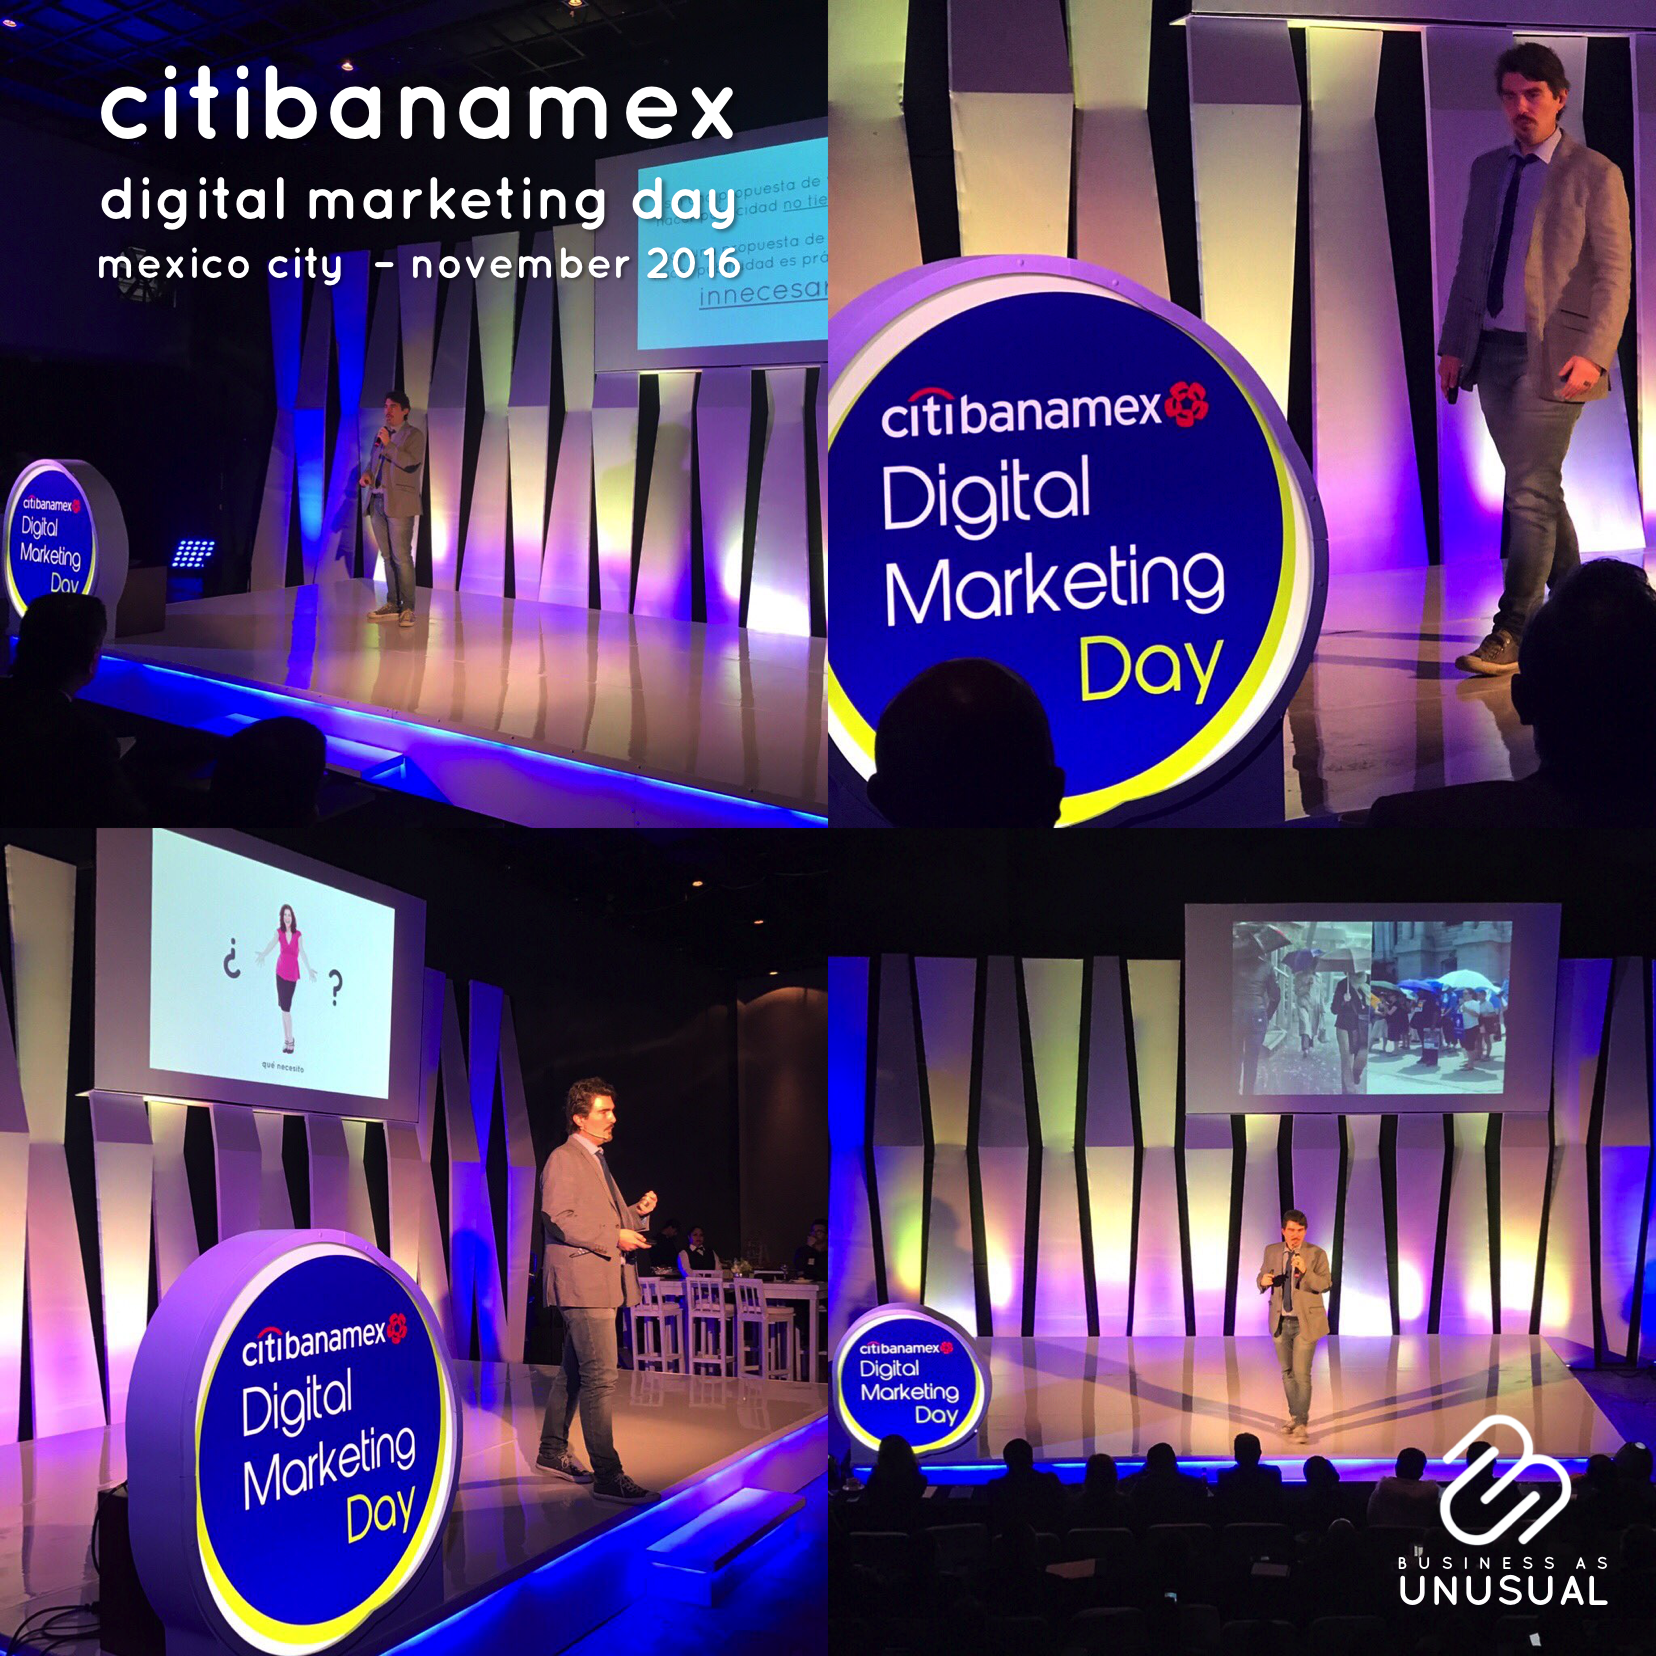 Citibanamex - Digital Marketing Day - Mexico City